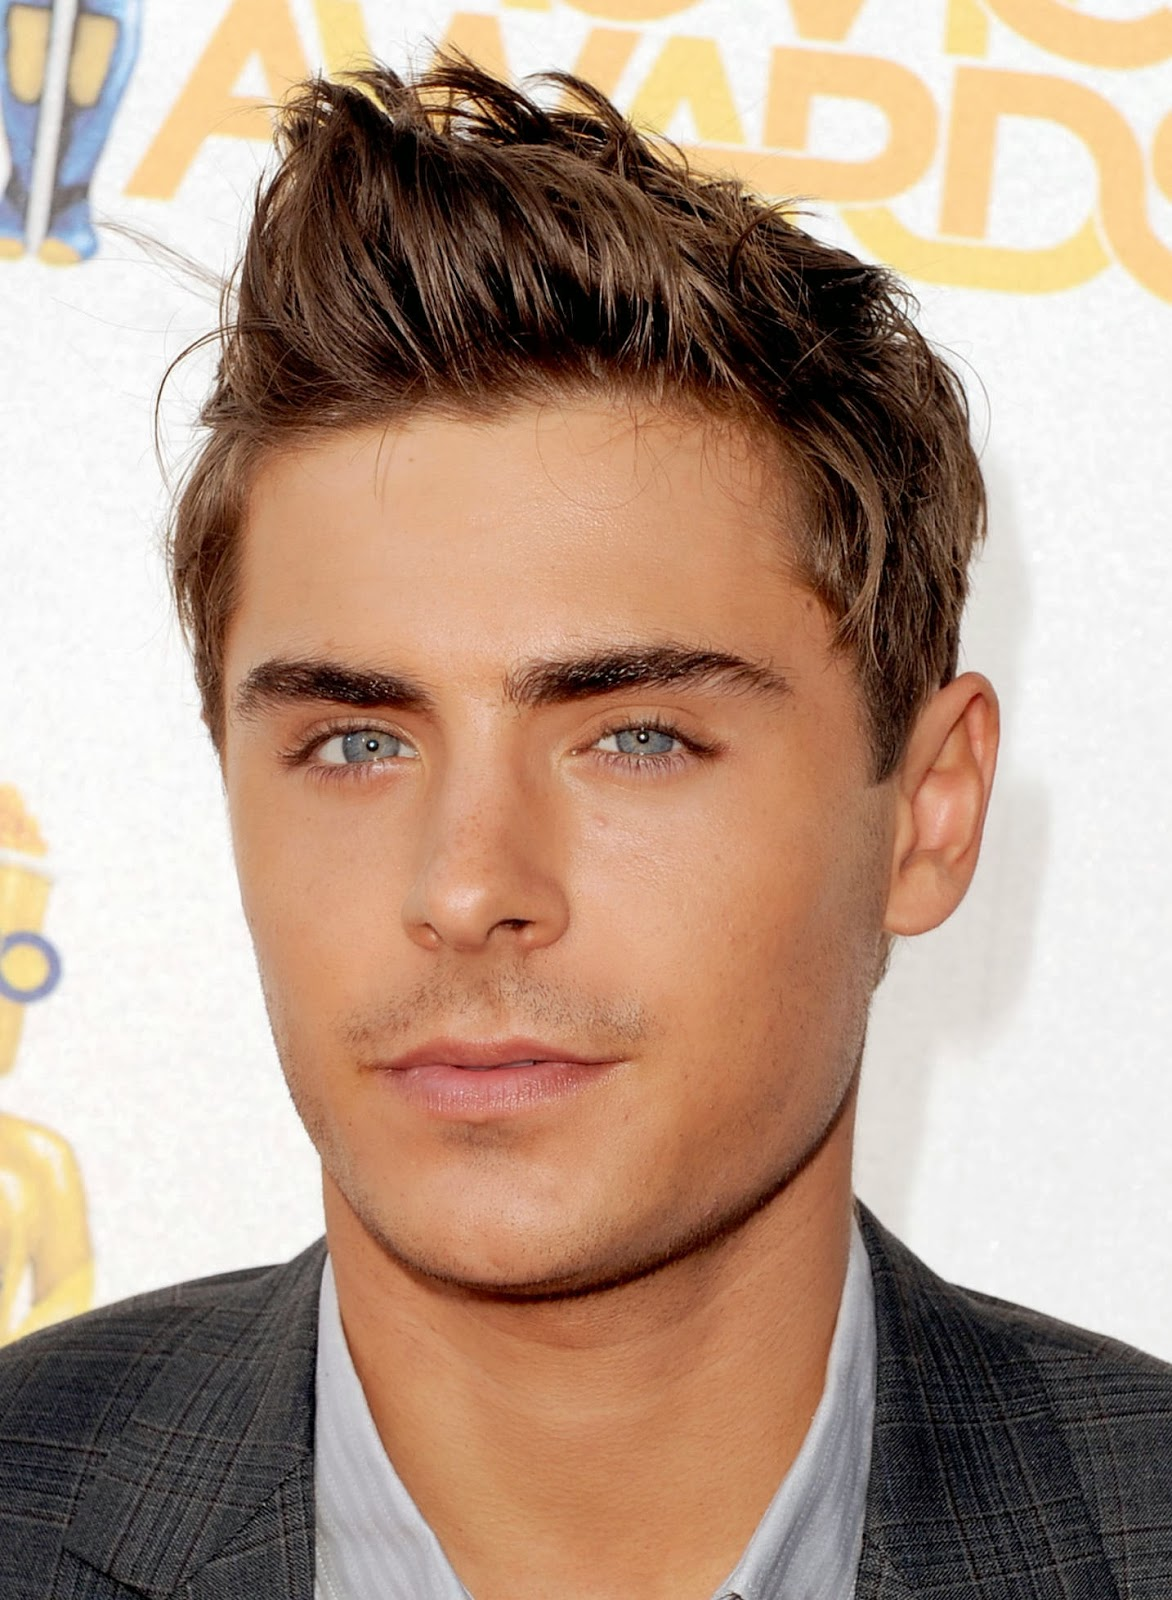 Hairstyles for Men Season : Hair Fashion Style | COLOR ...